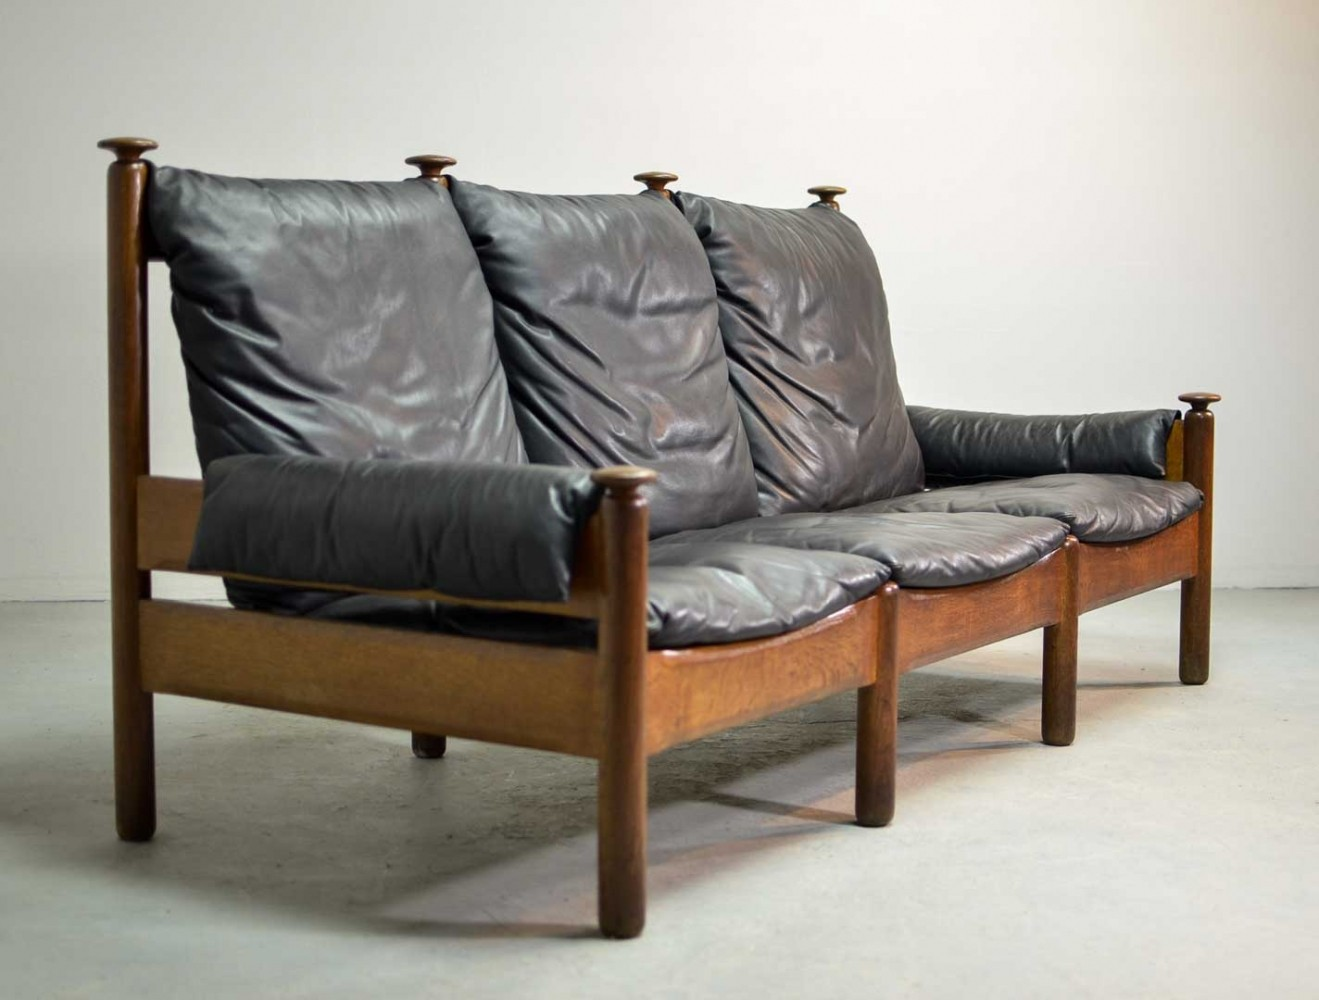 Sturdy Mid-Century Smooth Black Leather Scandinavian 3-Seat Sofa, 1960s